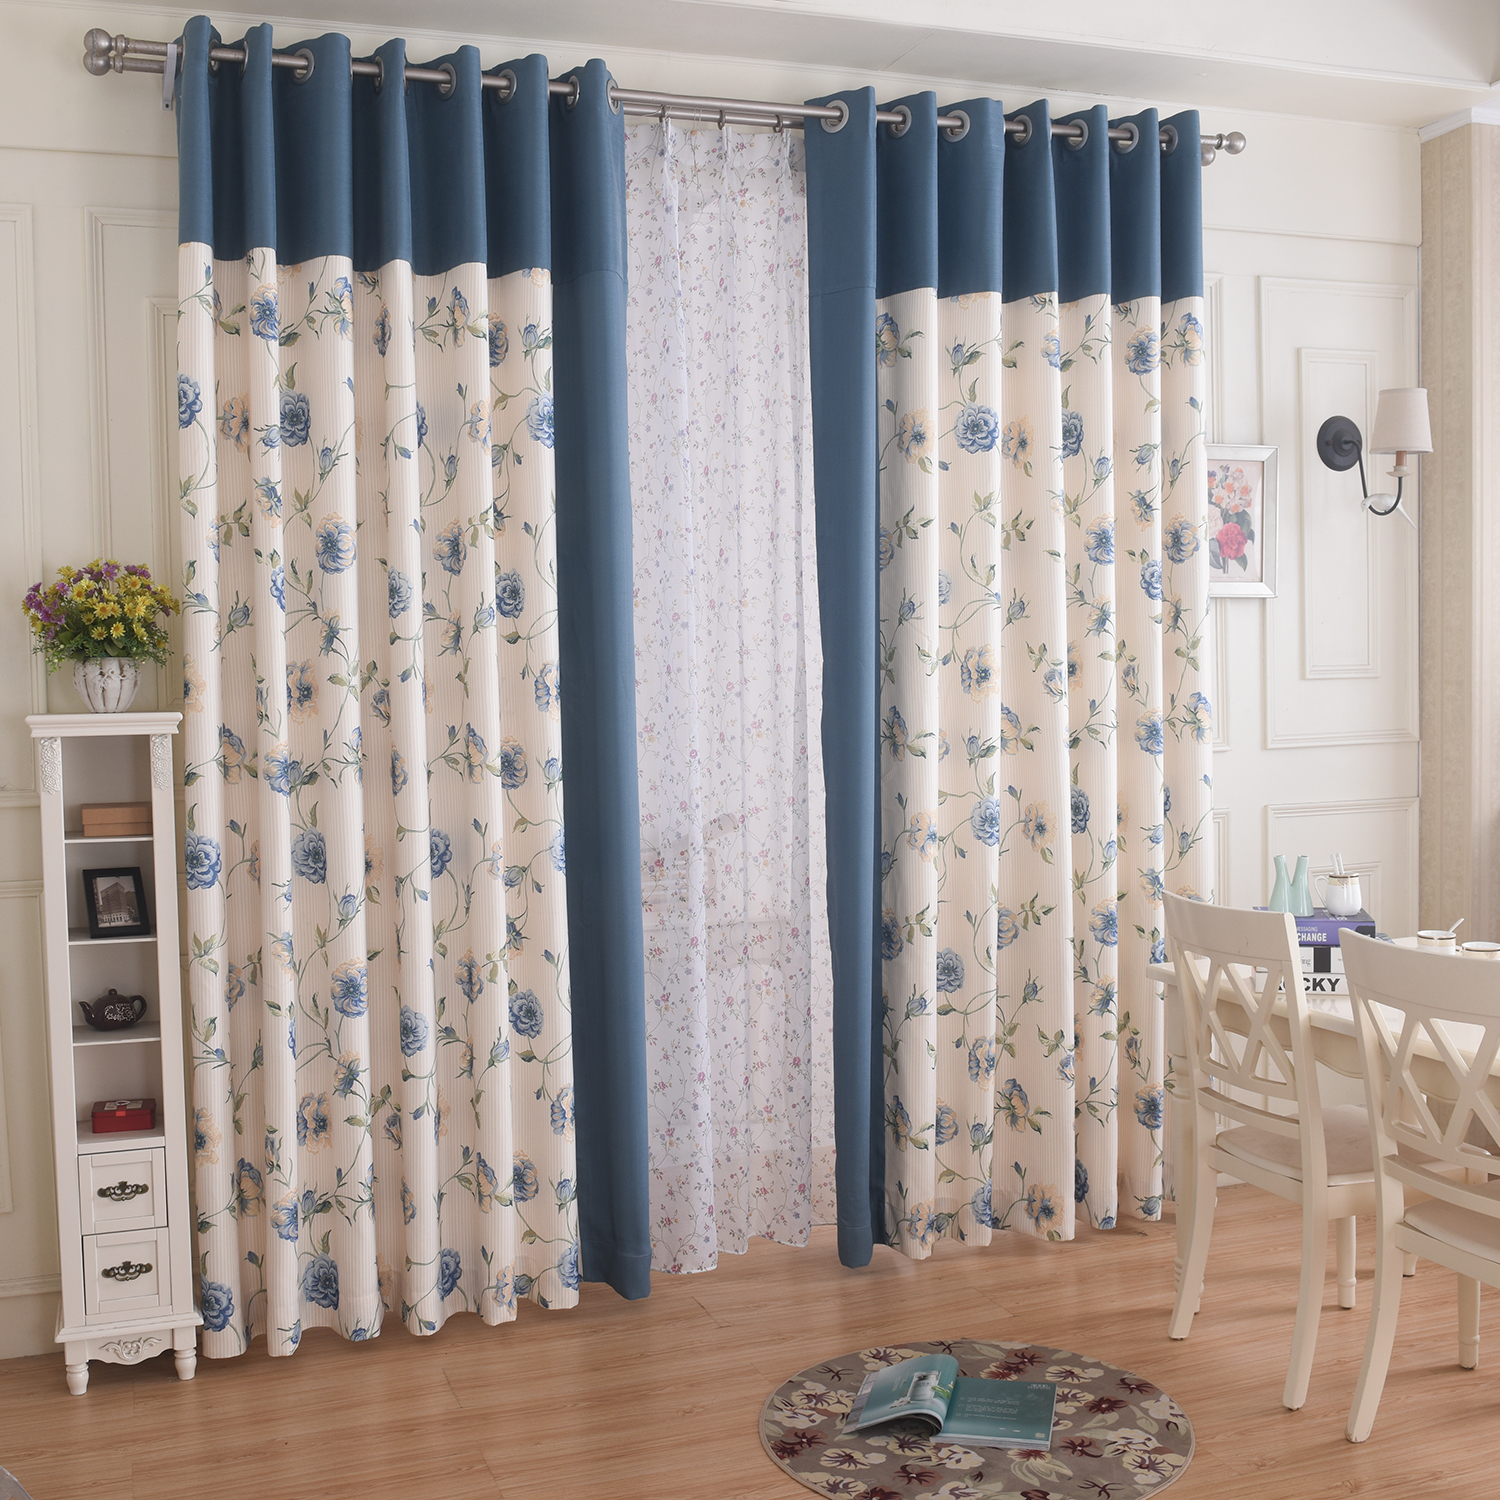 China Blue Curtains China Blue Floral Curtains China Blue Floral Curtains Shopping